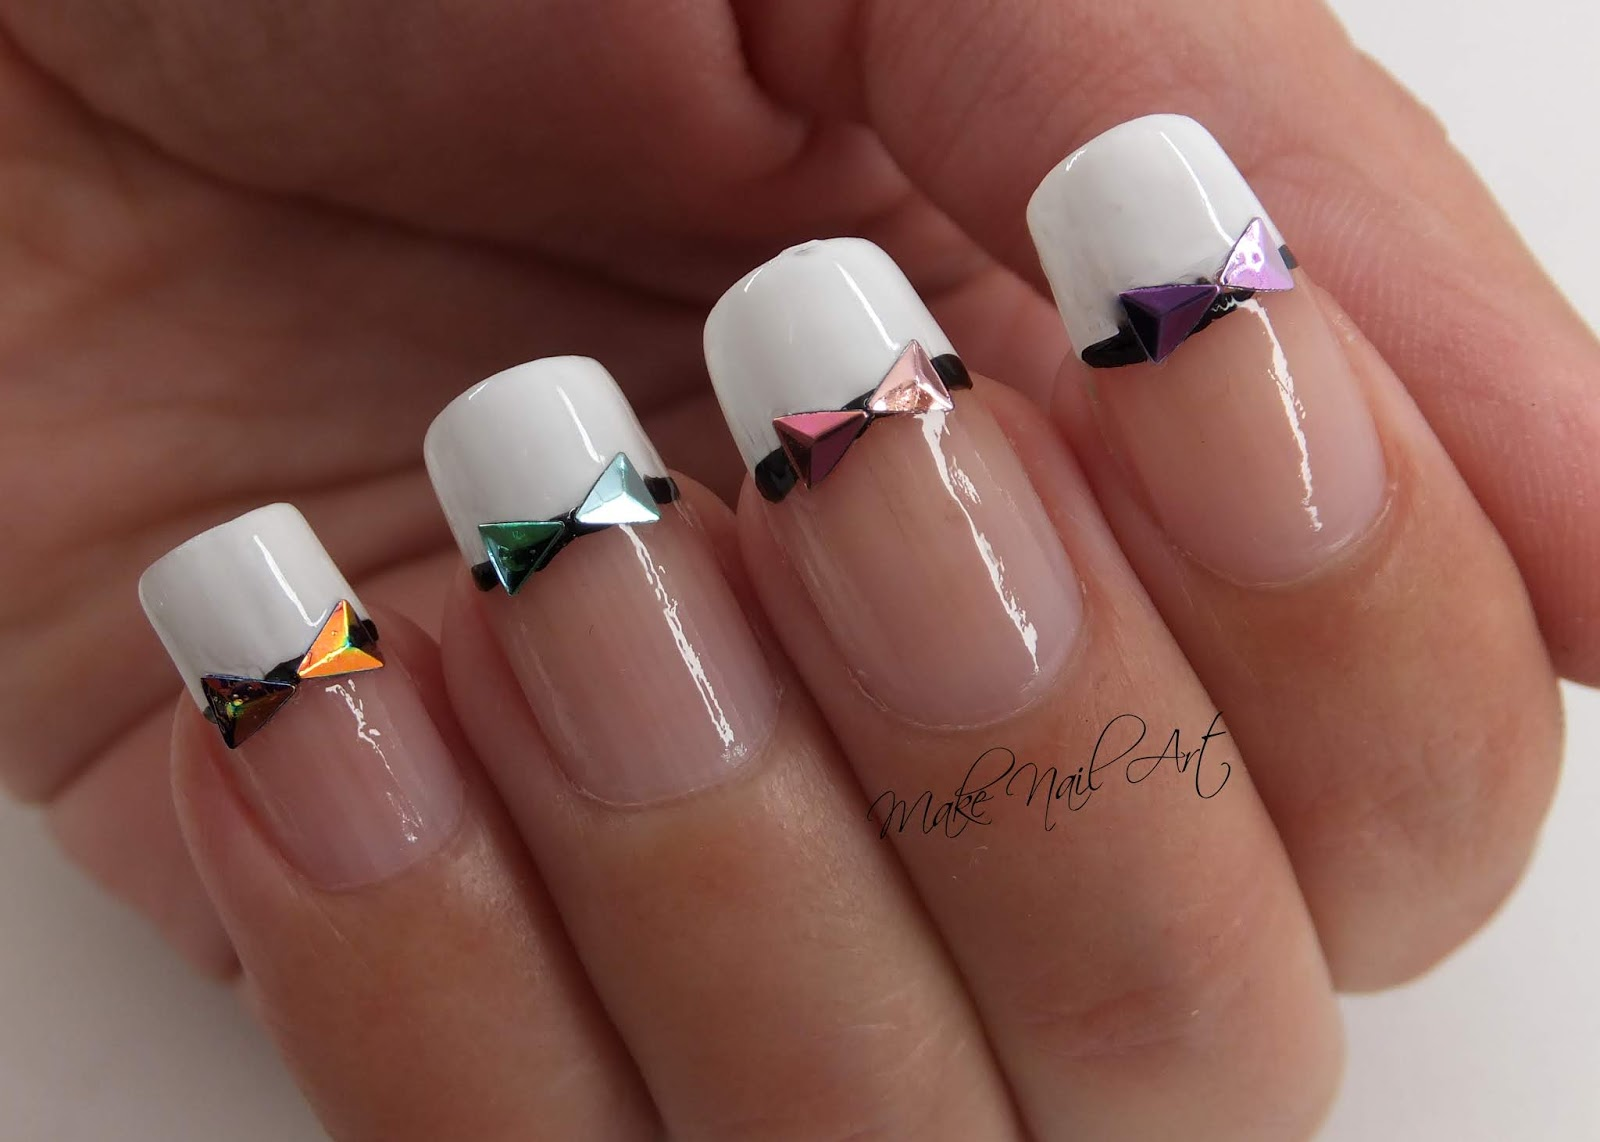 Make Nail Art French Manicure And Holographic Bows Nail Art Design